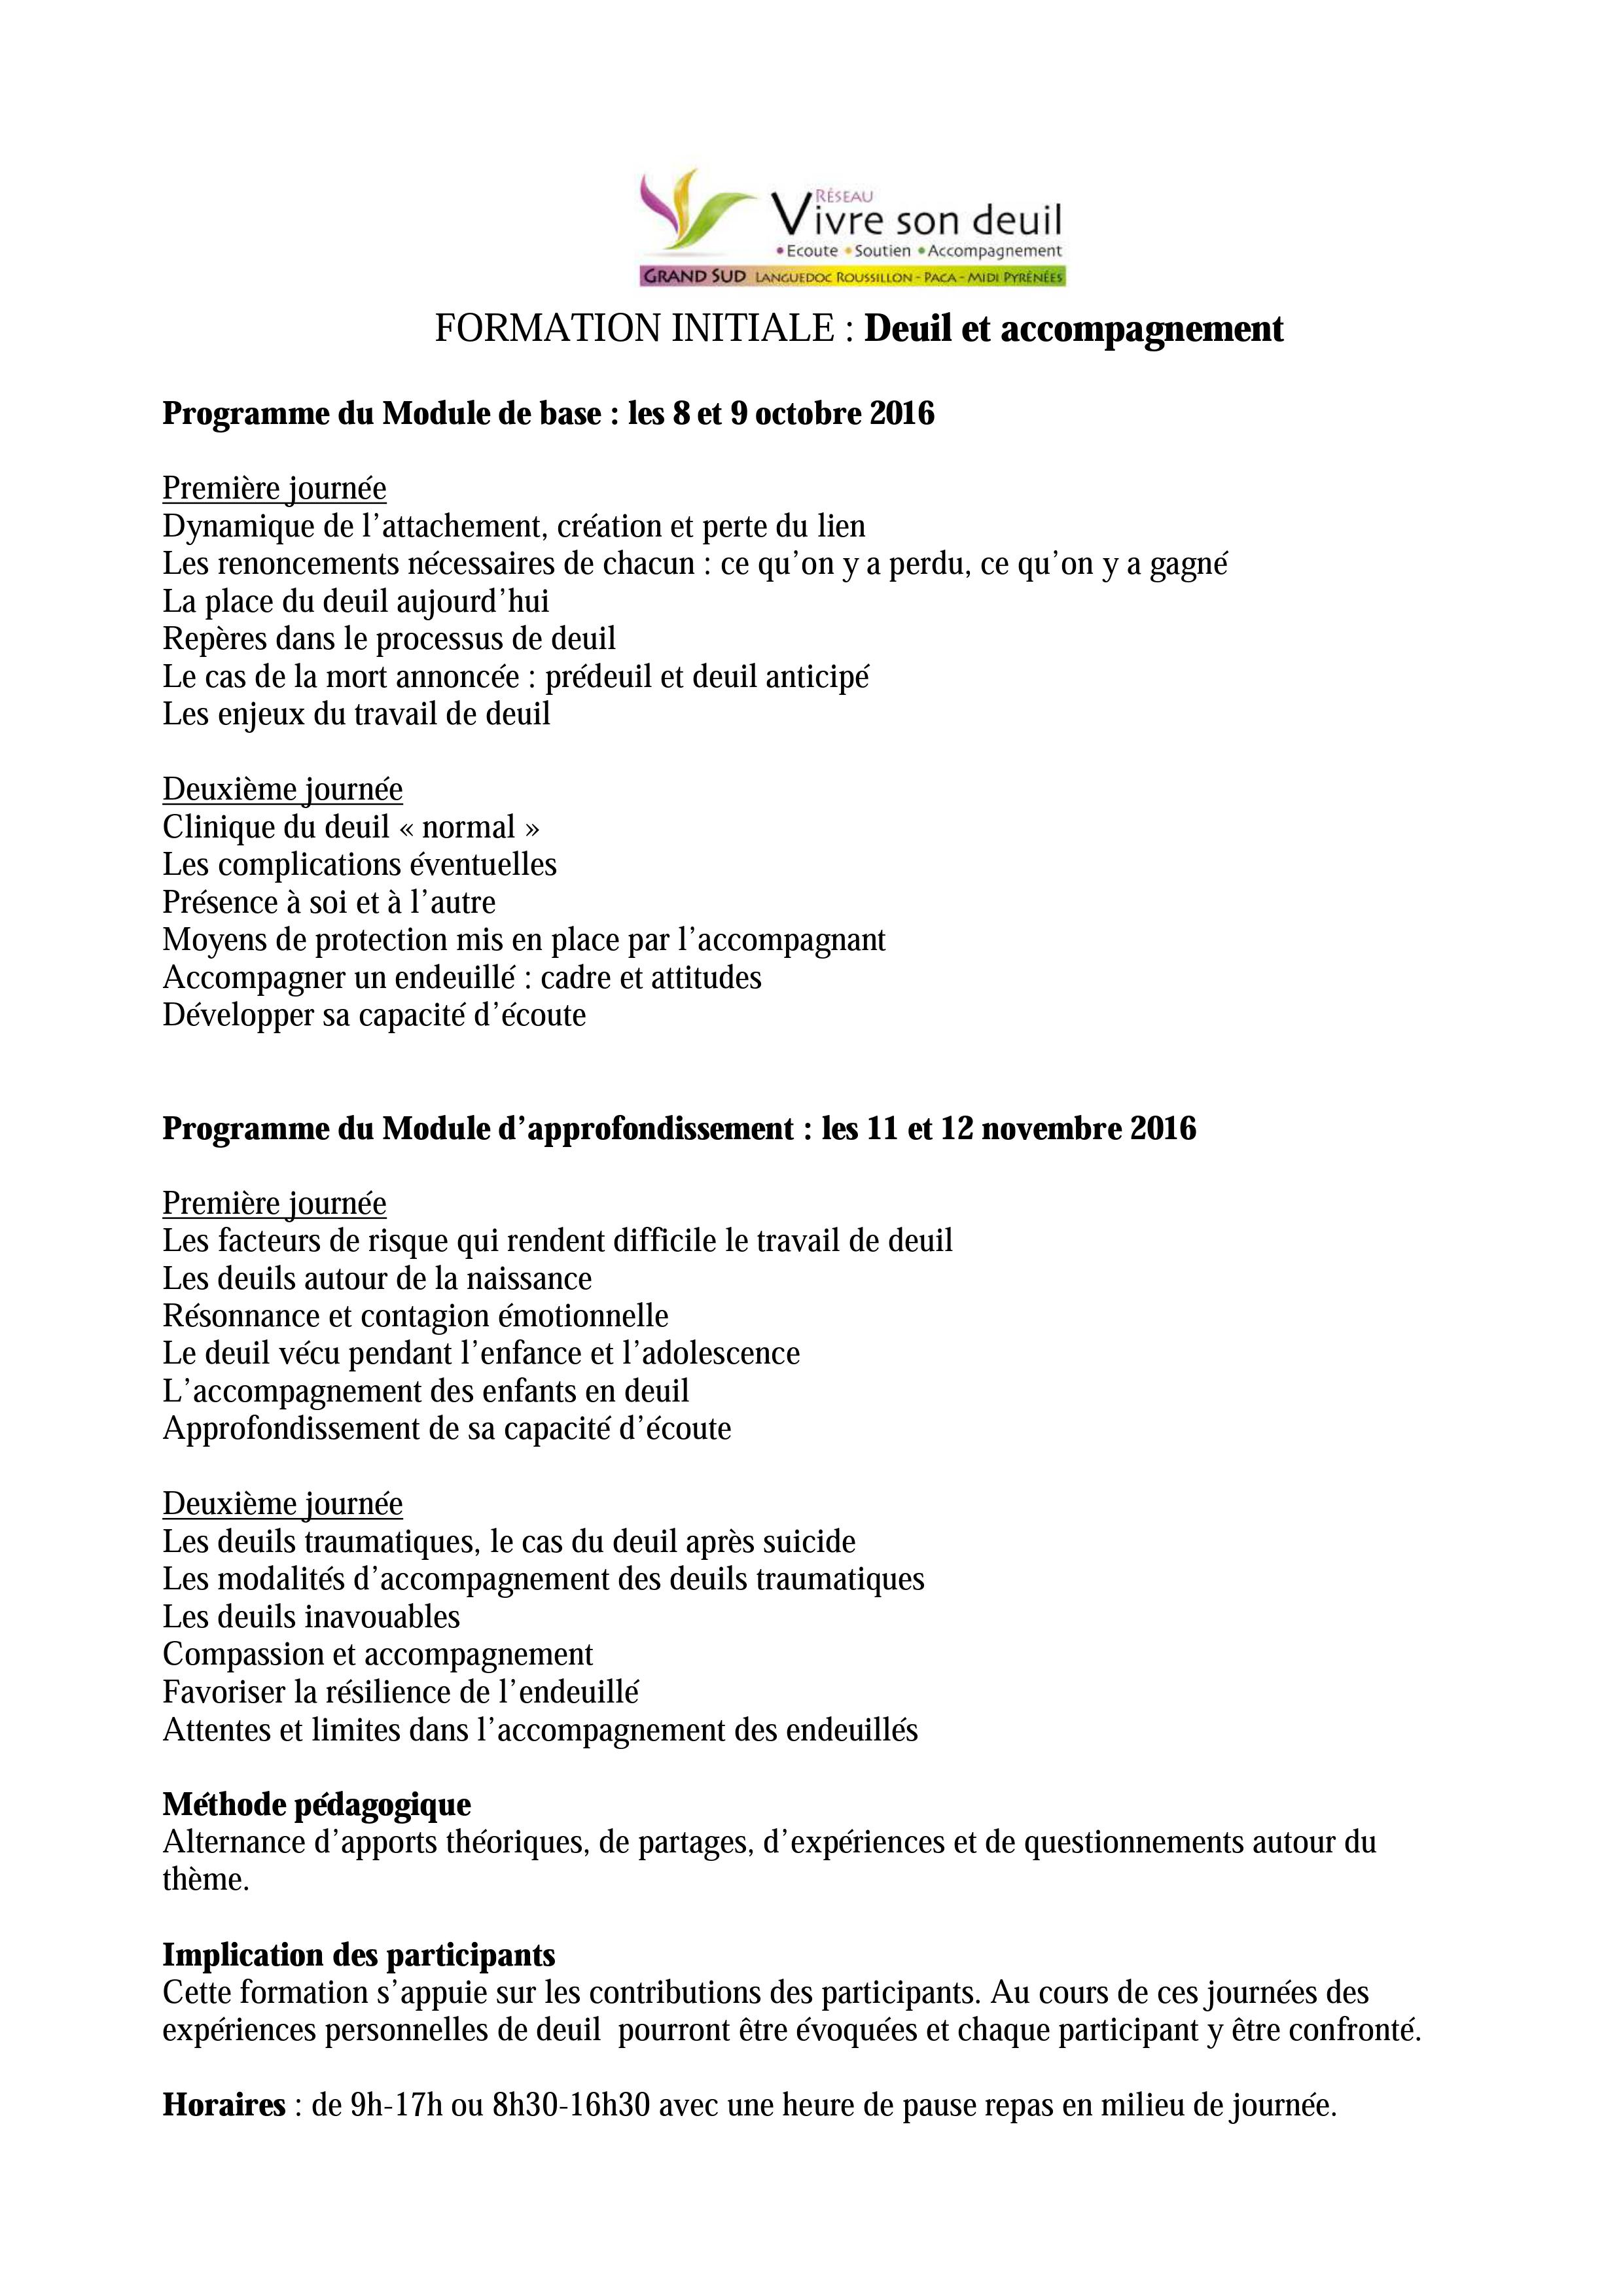 programme-formation-initiale